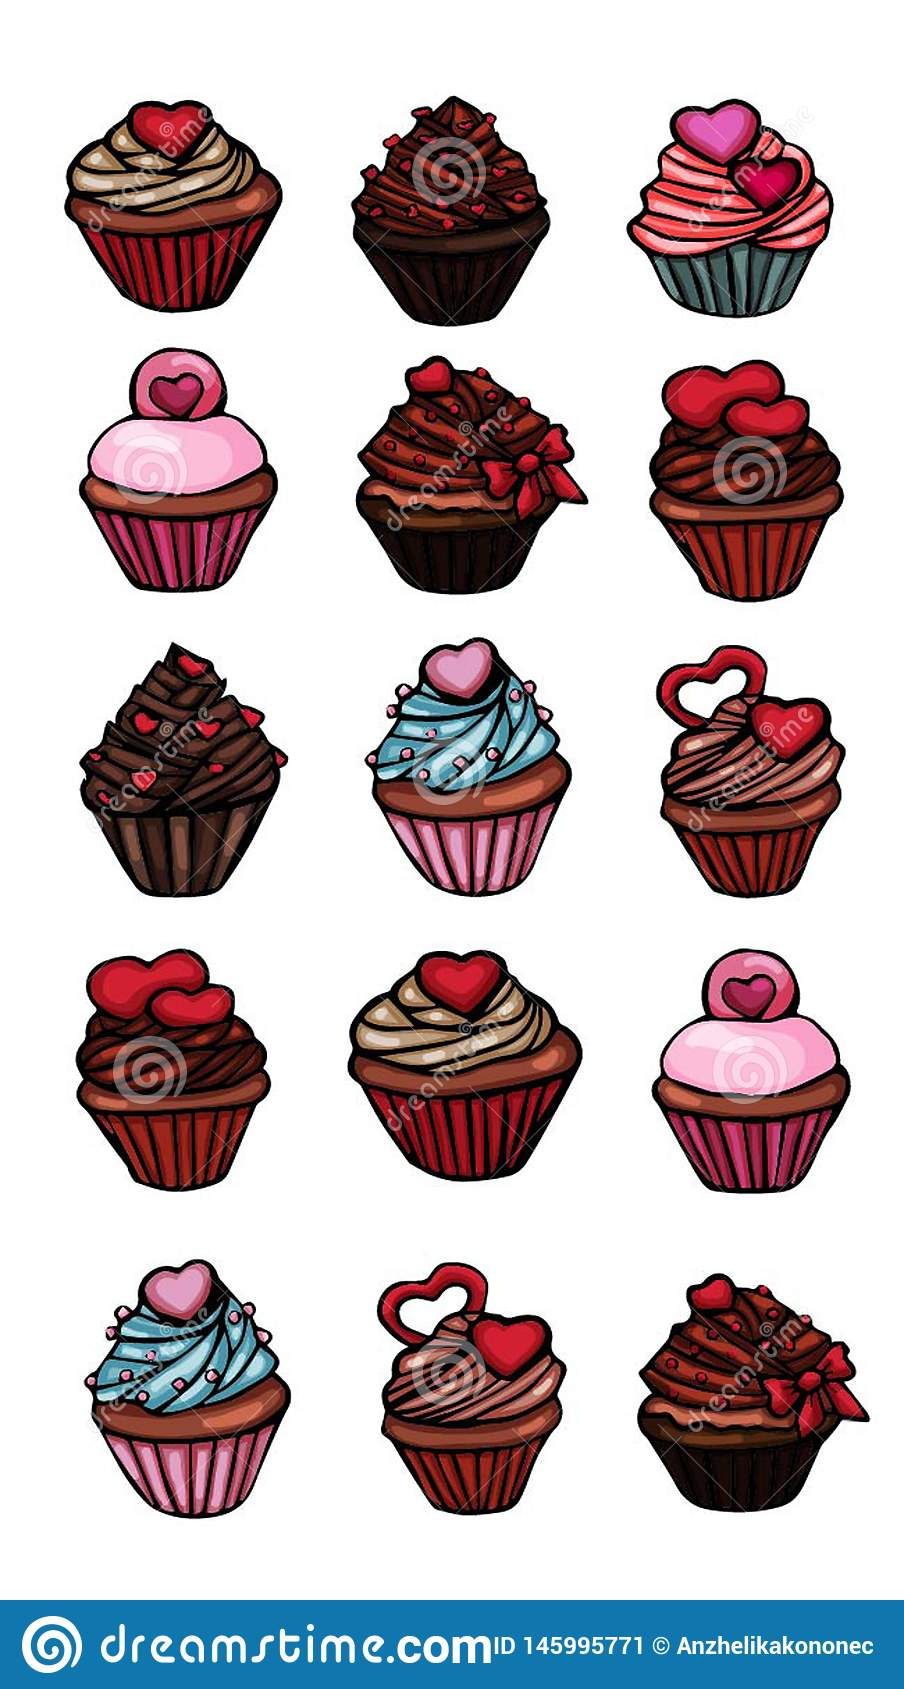 Cupcakes stickers set of different delicious